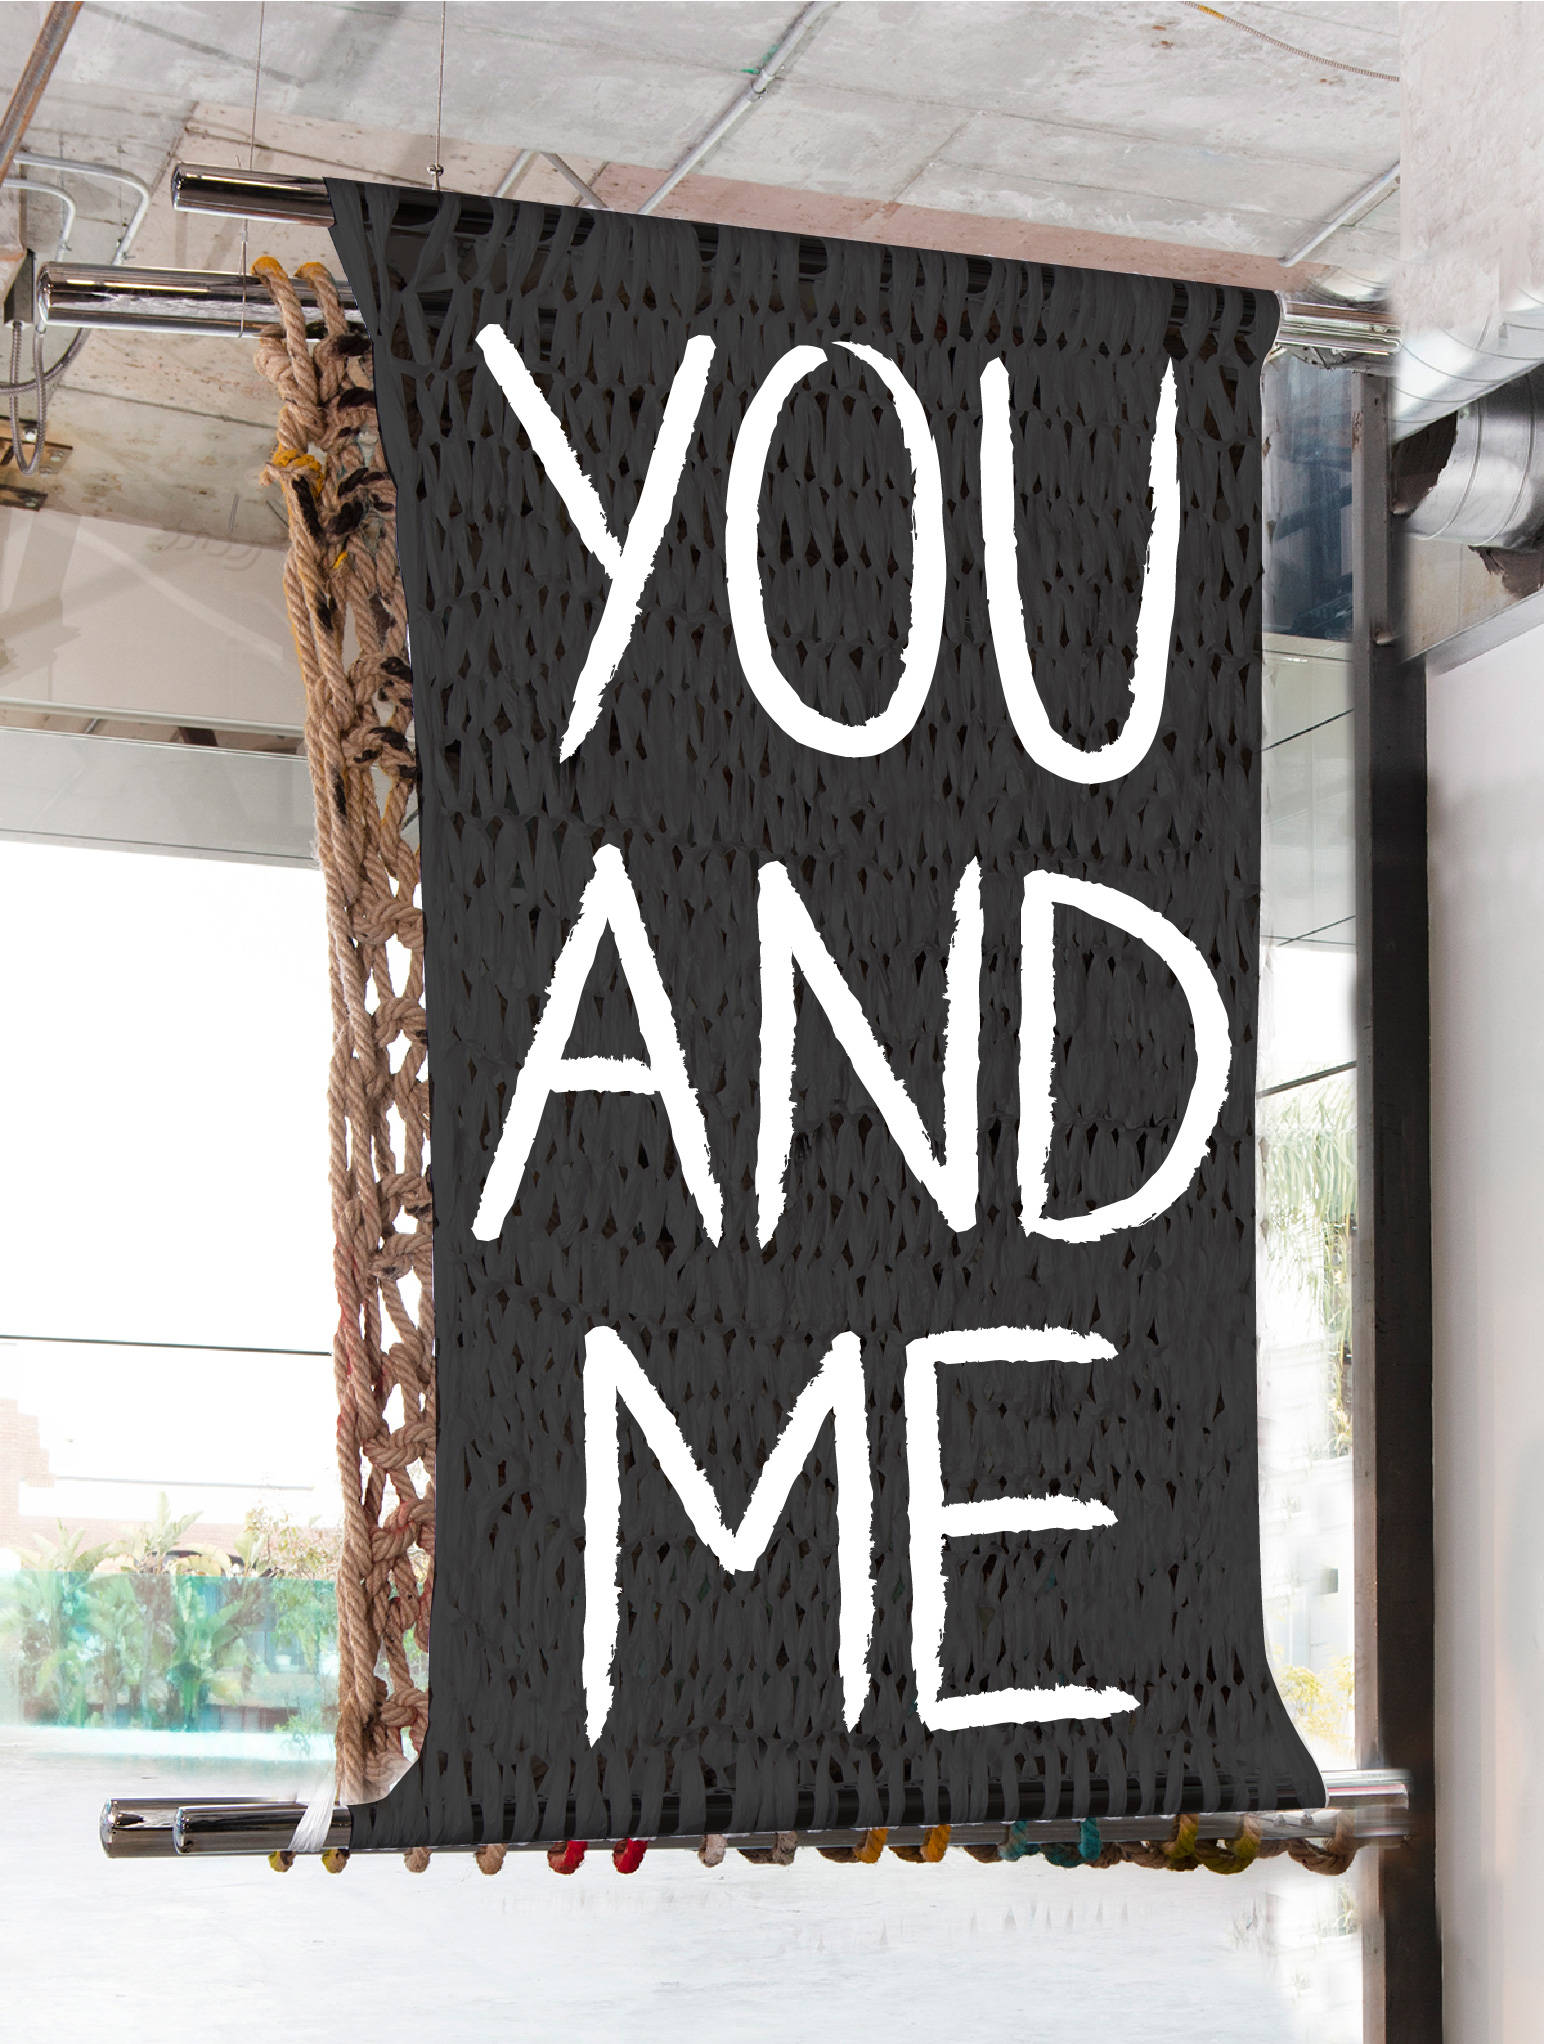 YOU AND ME | 5 X 4' | PAINT ON PLASTIC